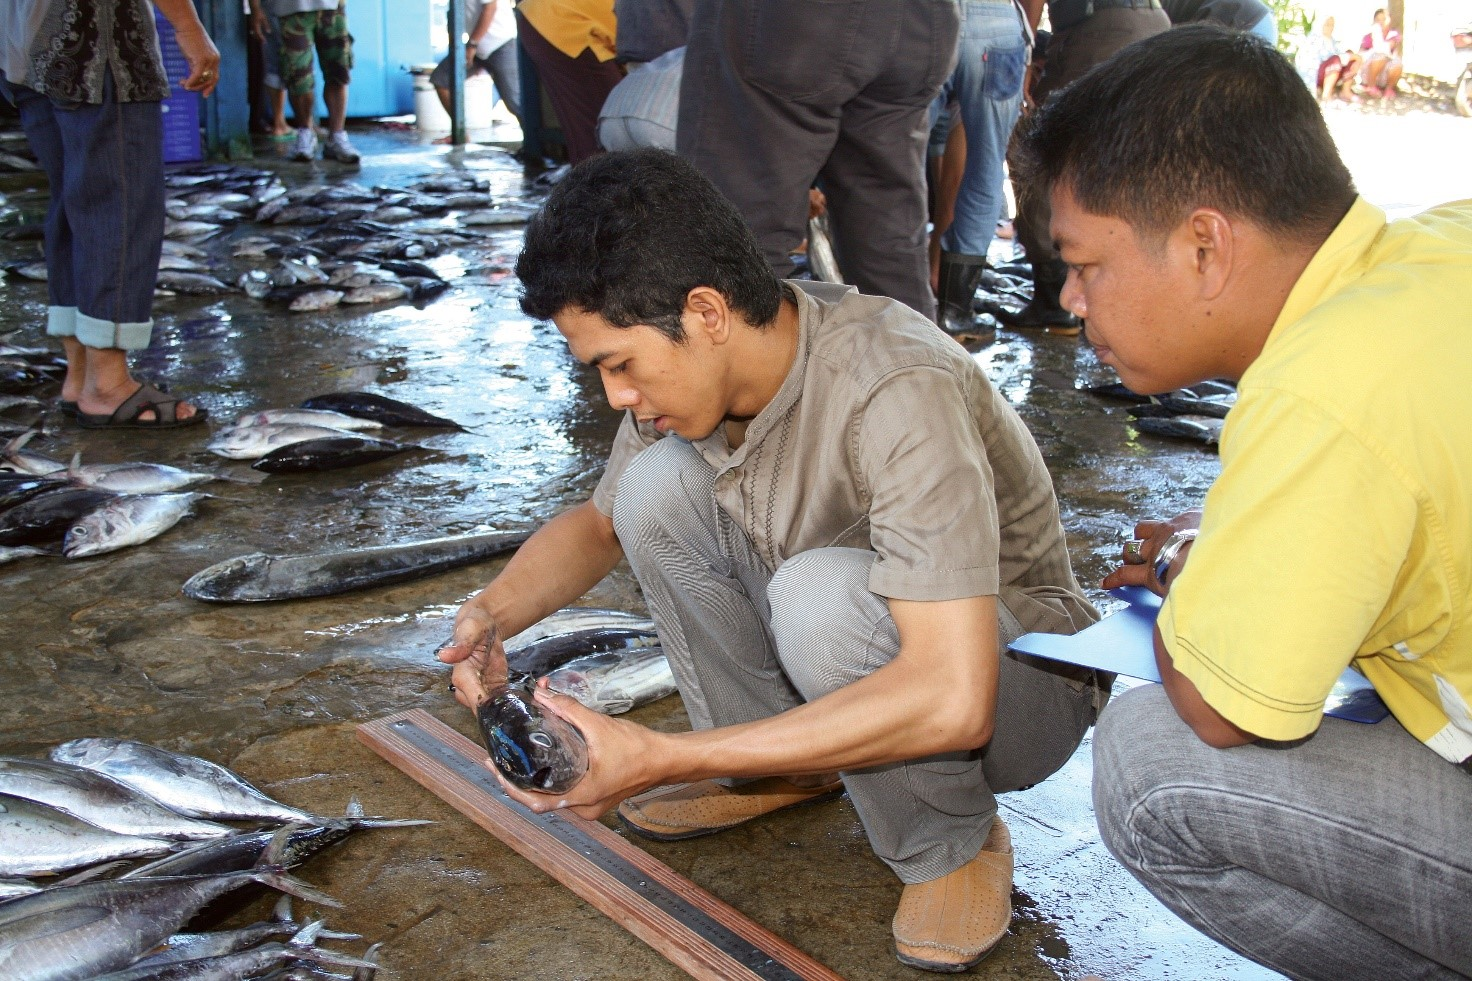 Two men squatting down identifying species of fish at a fish landing site in Indonesia. The men are inspecting a fish and other fish can be seen along the landing site.